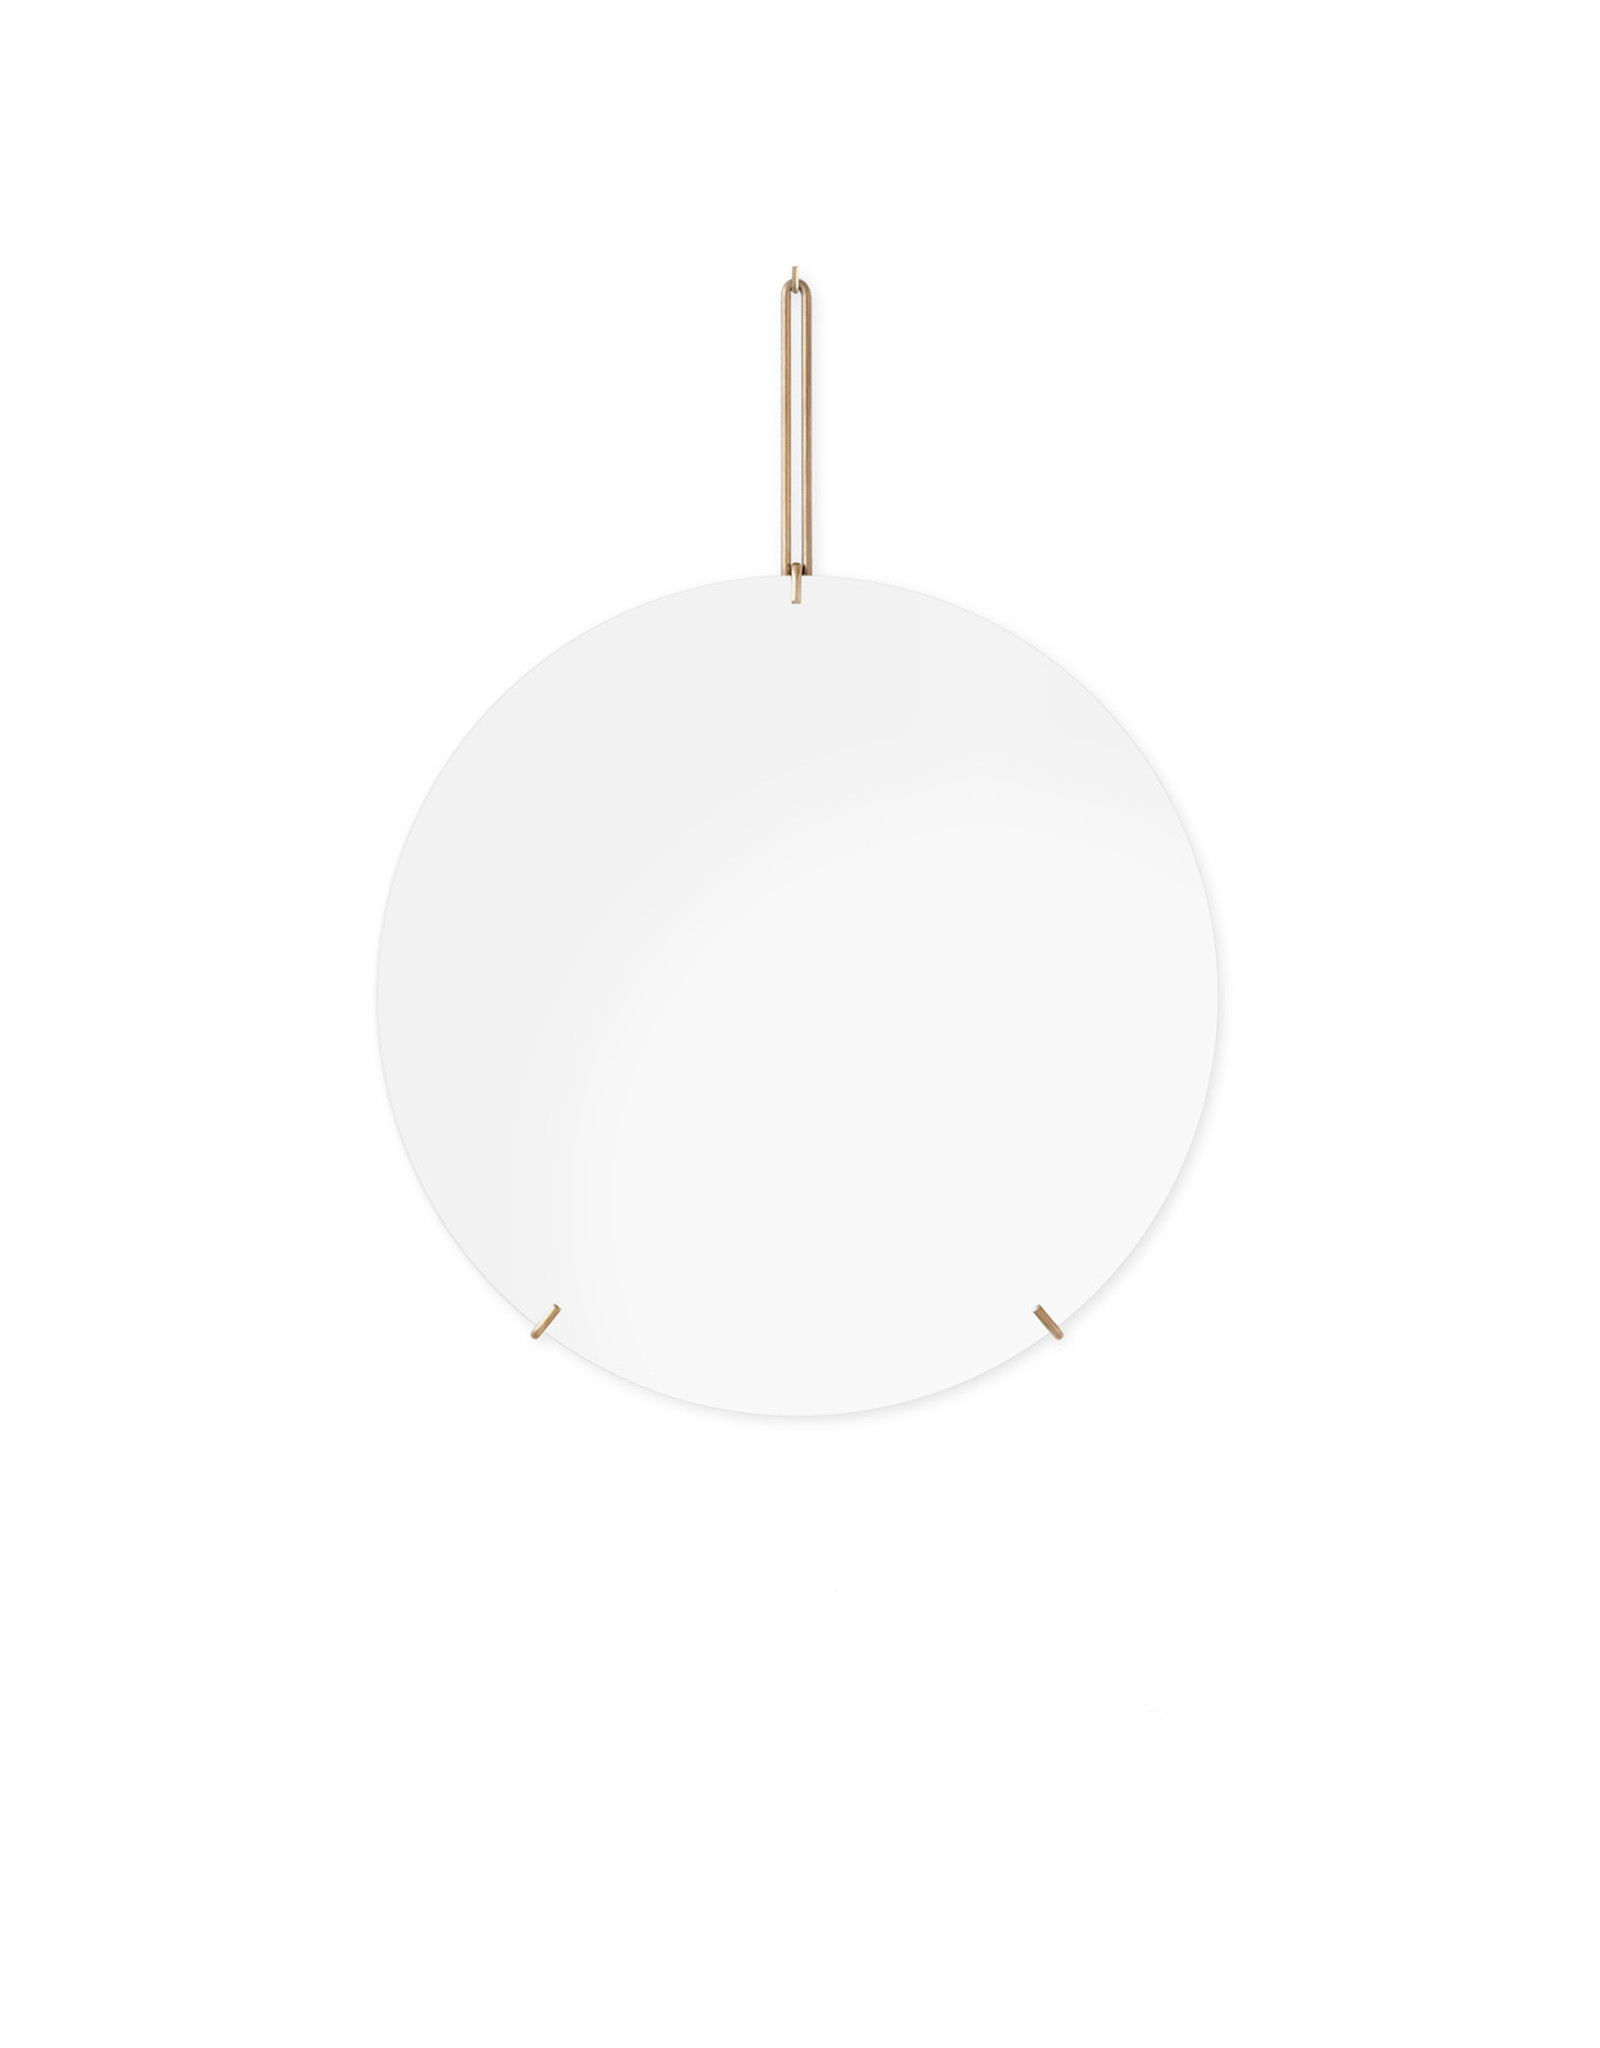 Moebe Moebe Wall Mirror Ø50 Brass